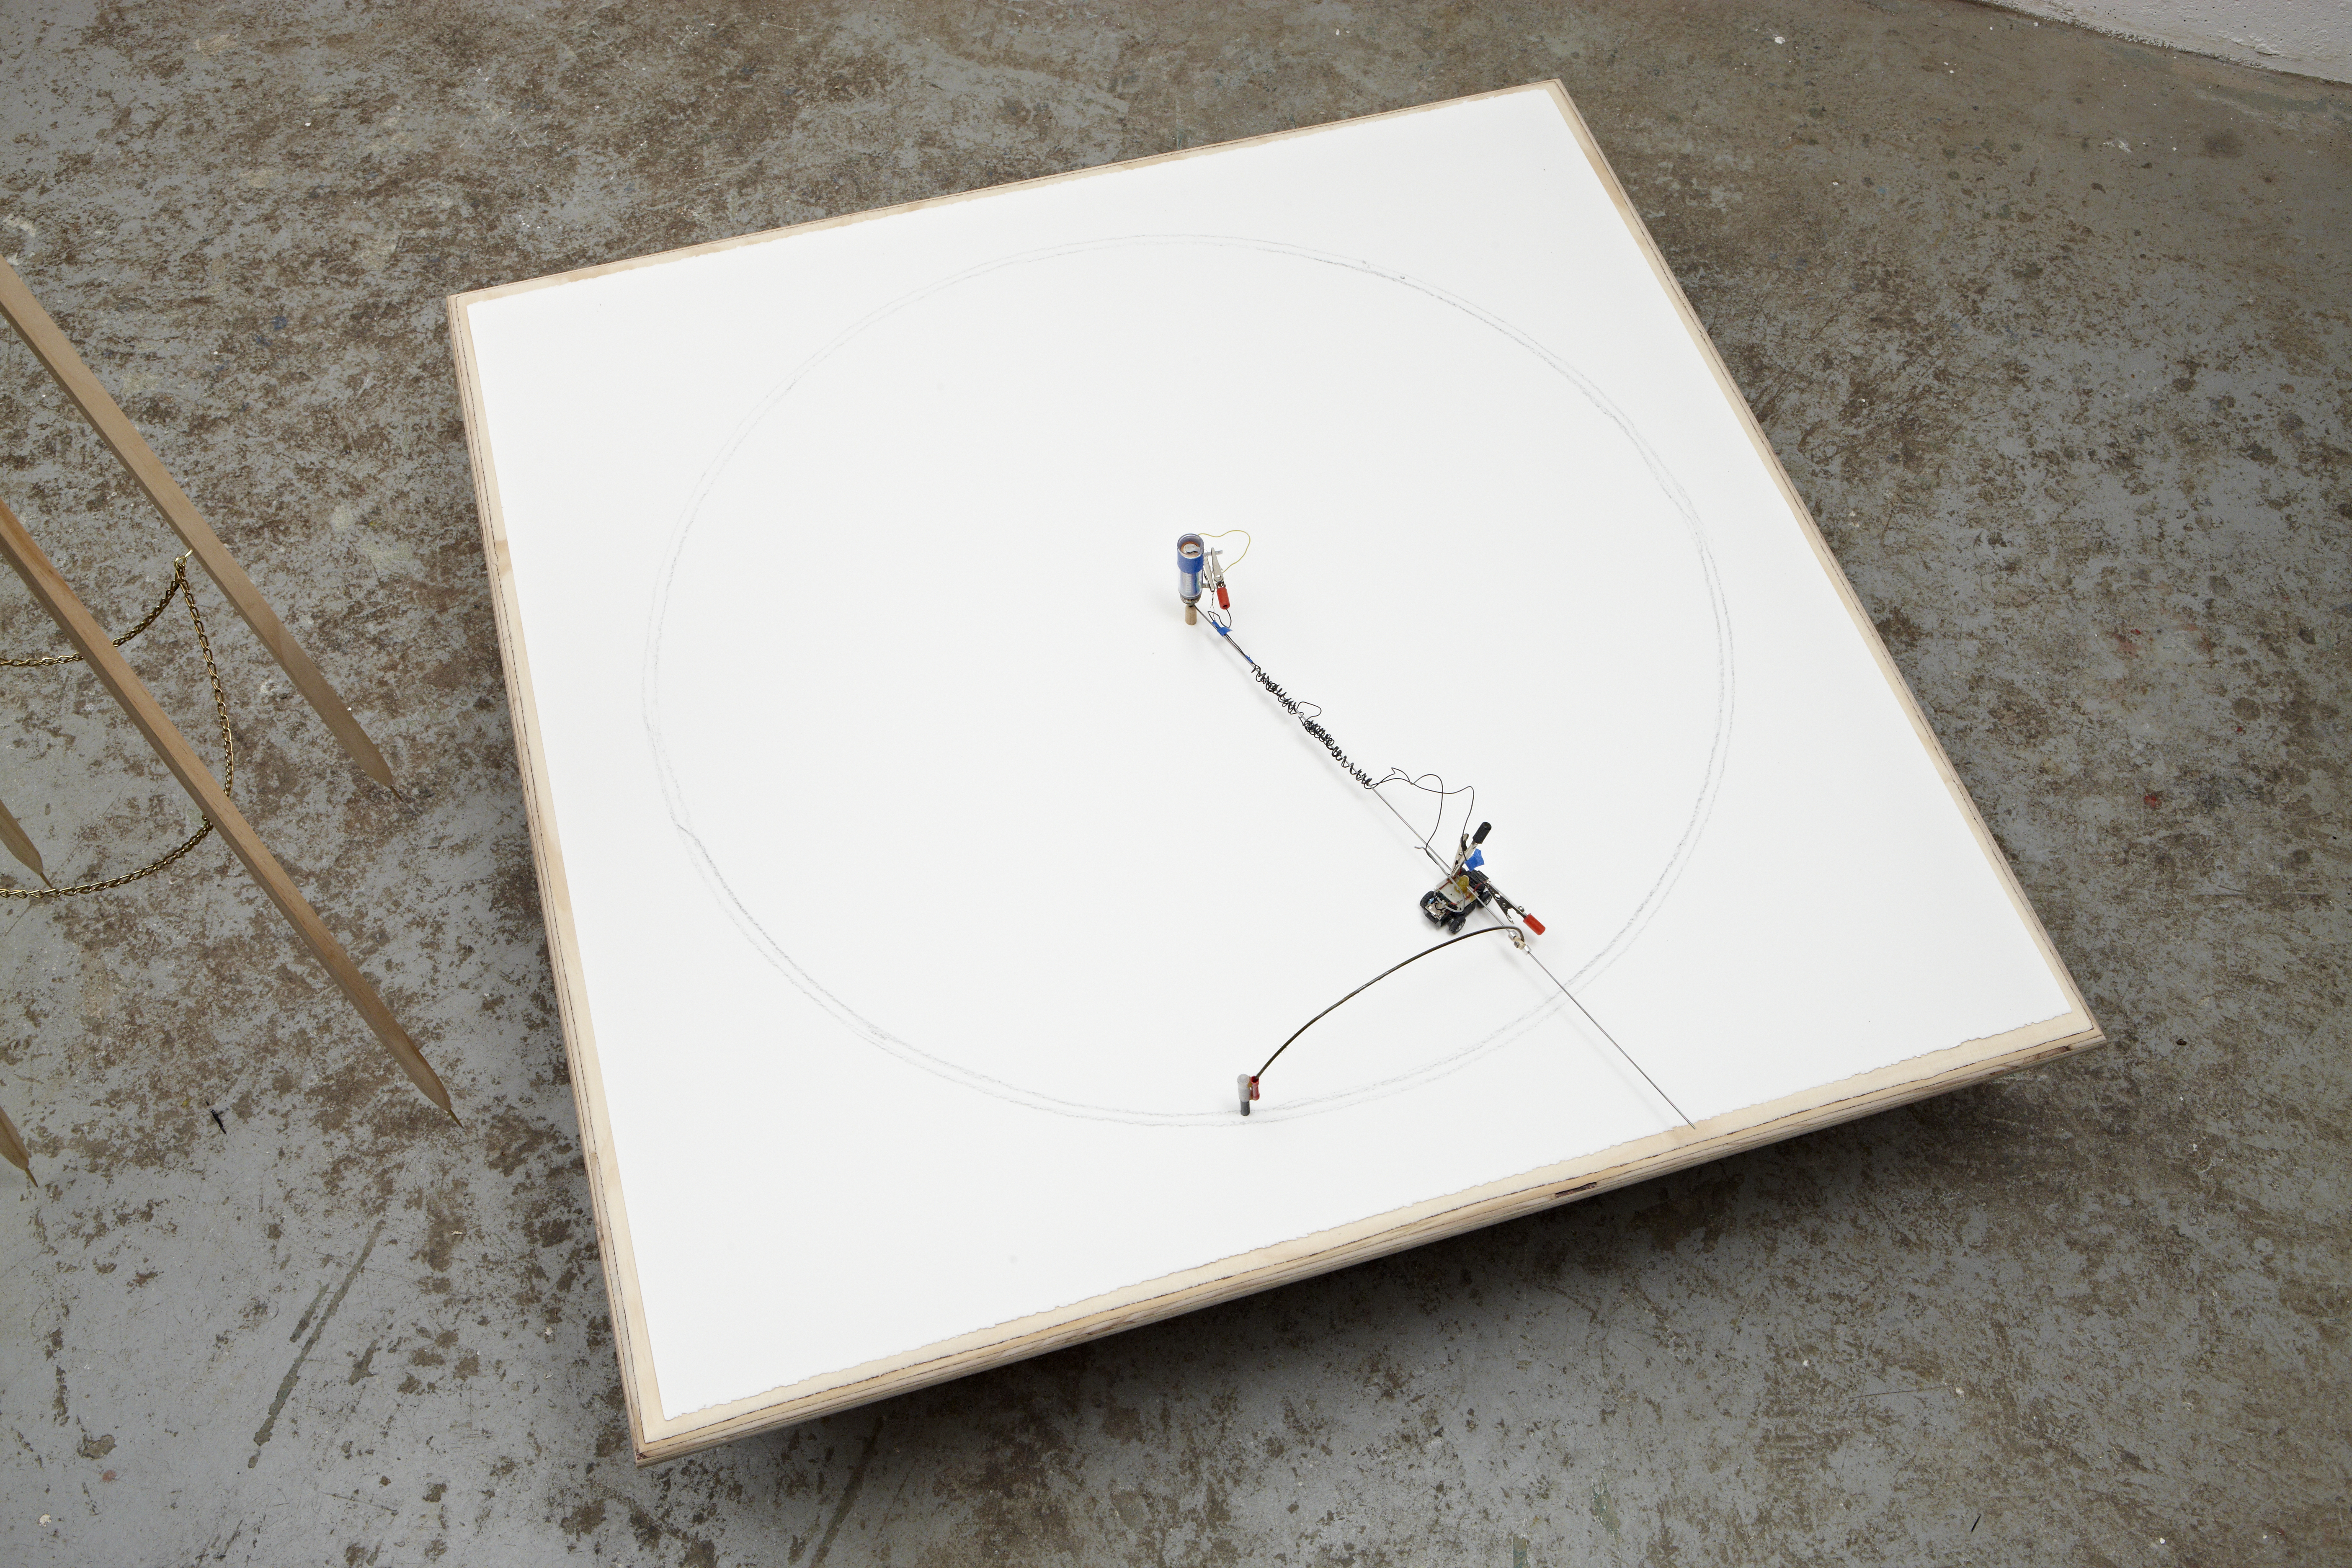 untitled (square-to-circle), 2010